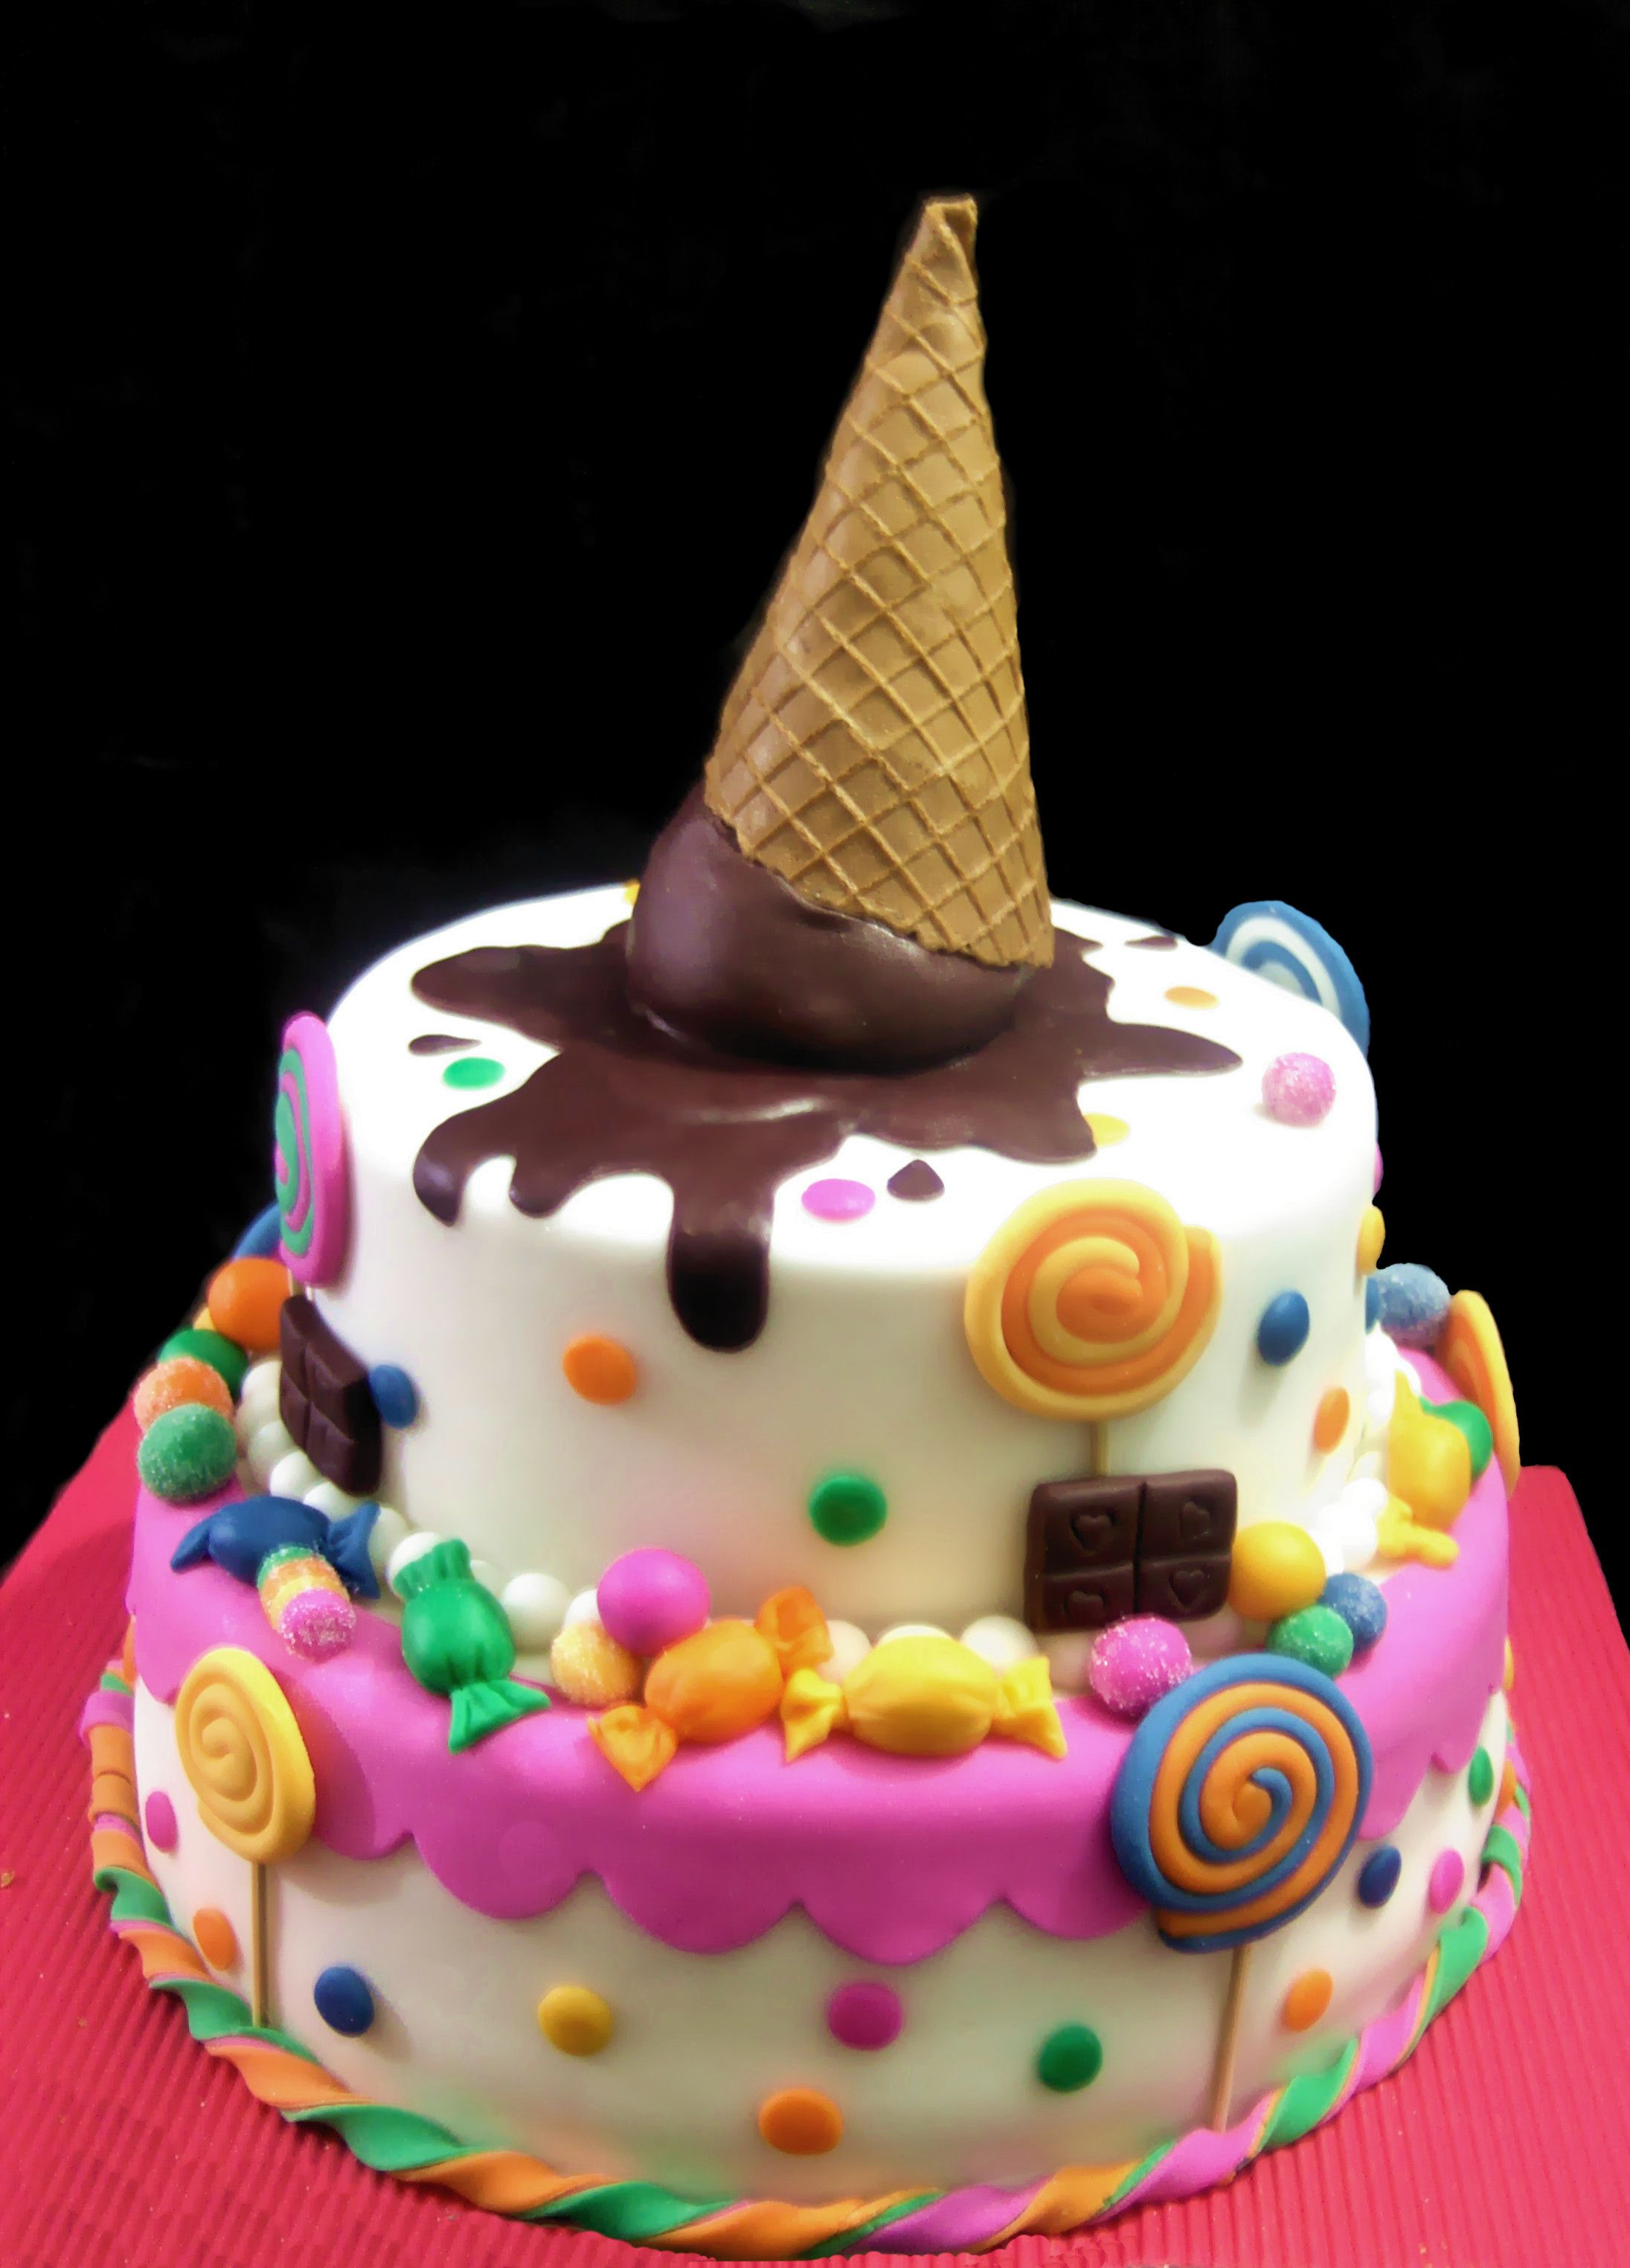 Geburtstag Kuchen Super Cute For A Little Girl 39s Cake Cakes Pinterest